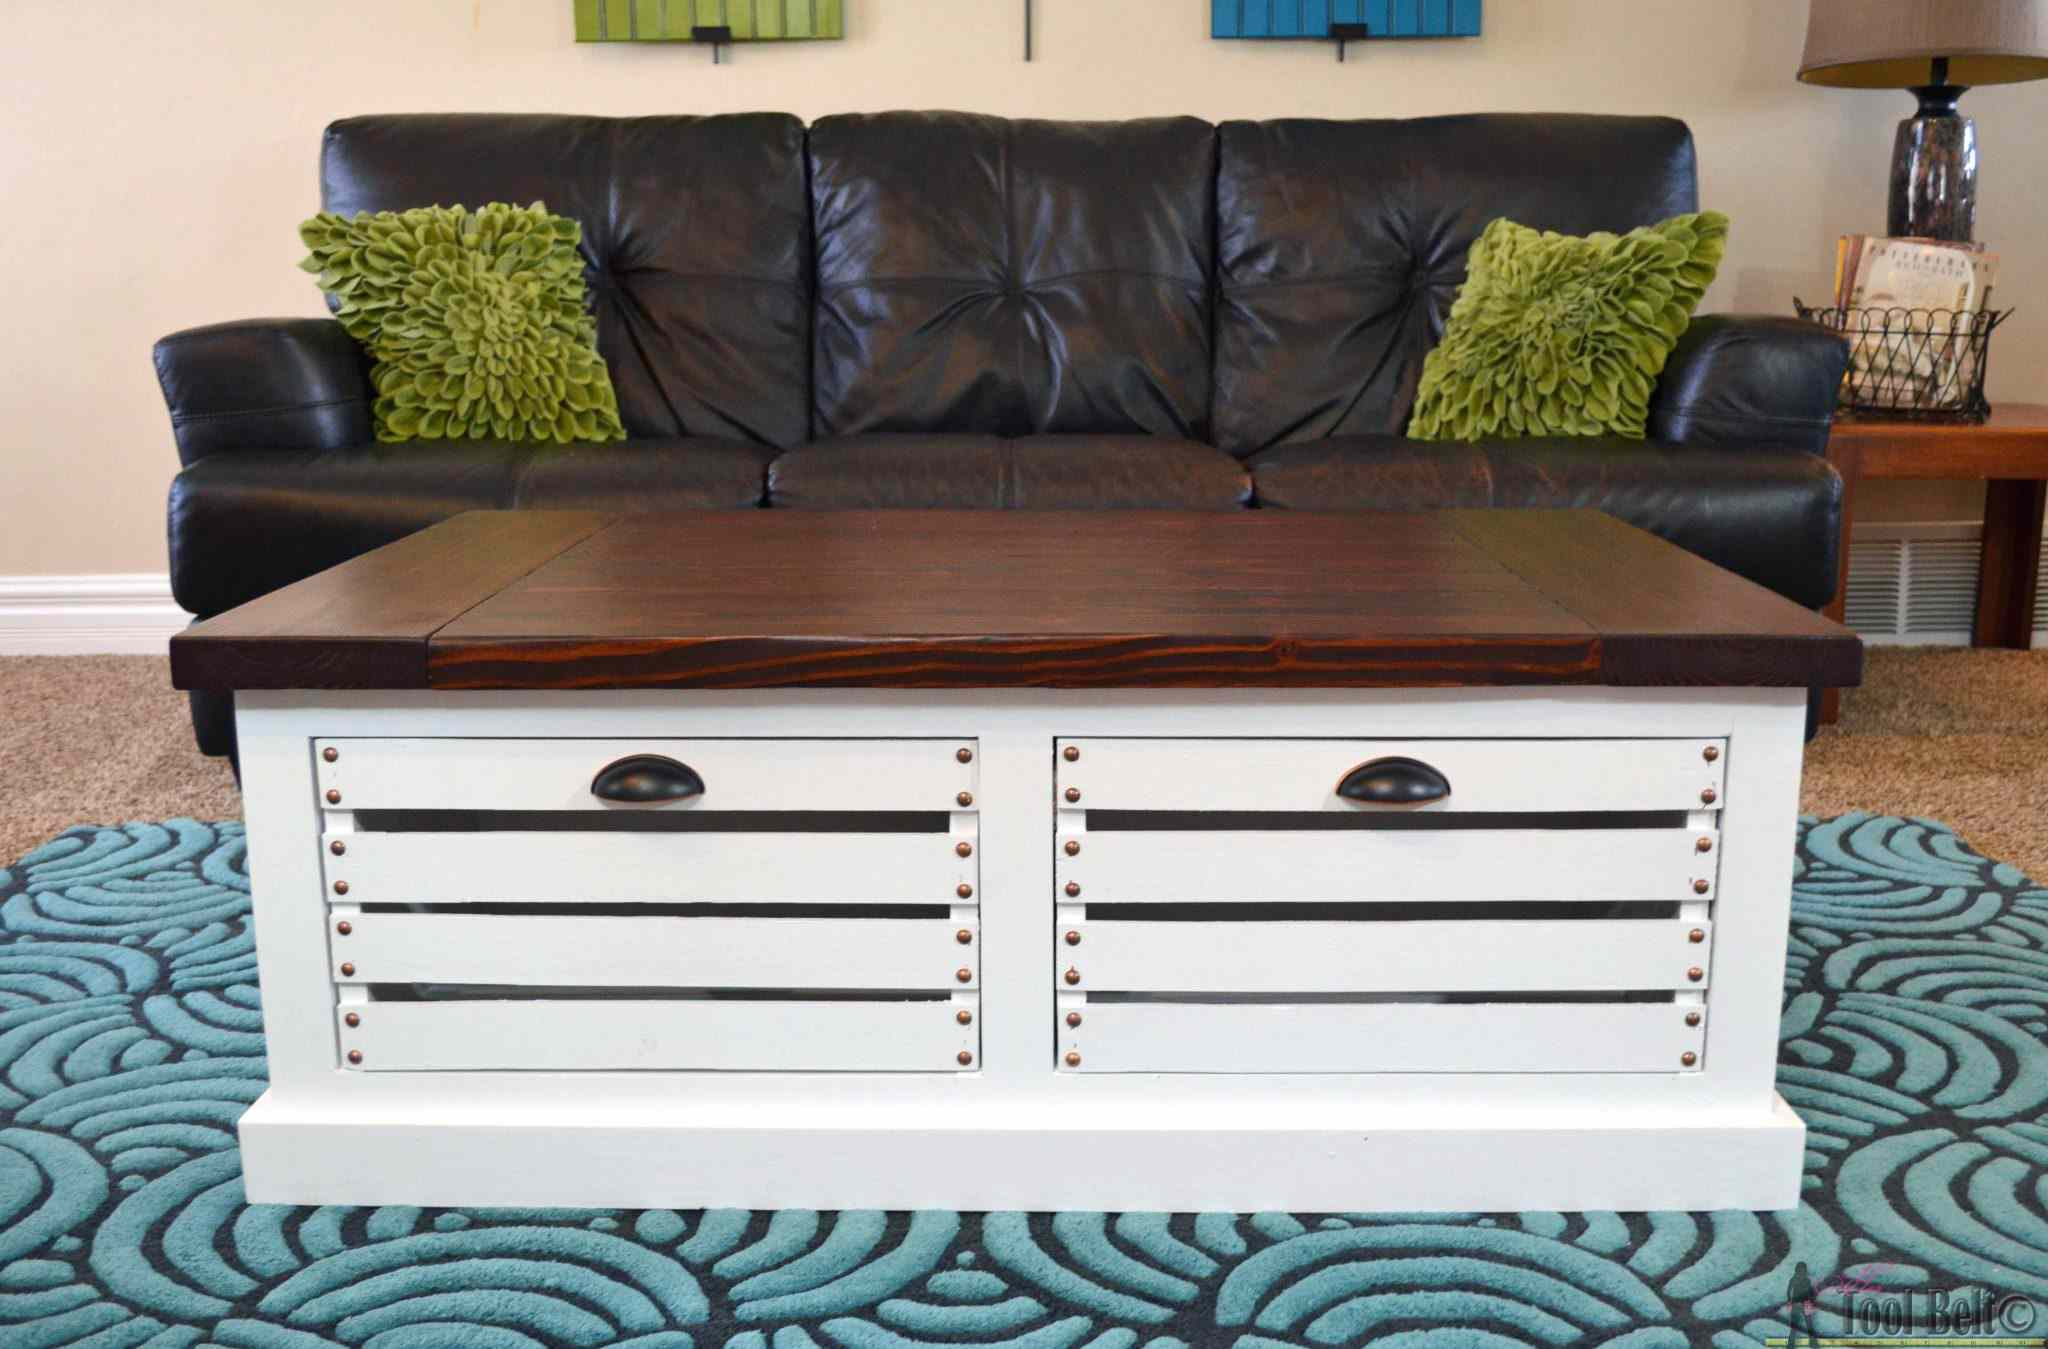 free diy coffee table plans you can build today crate storage front accent living room decoration ideas little white corner and chairs round side with drawer mosaic garden office